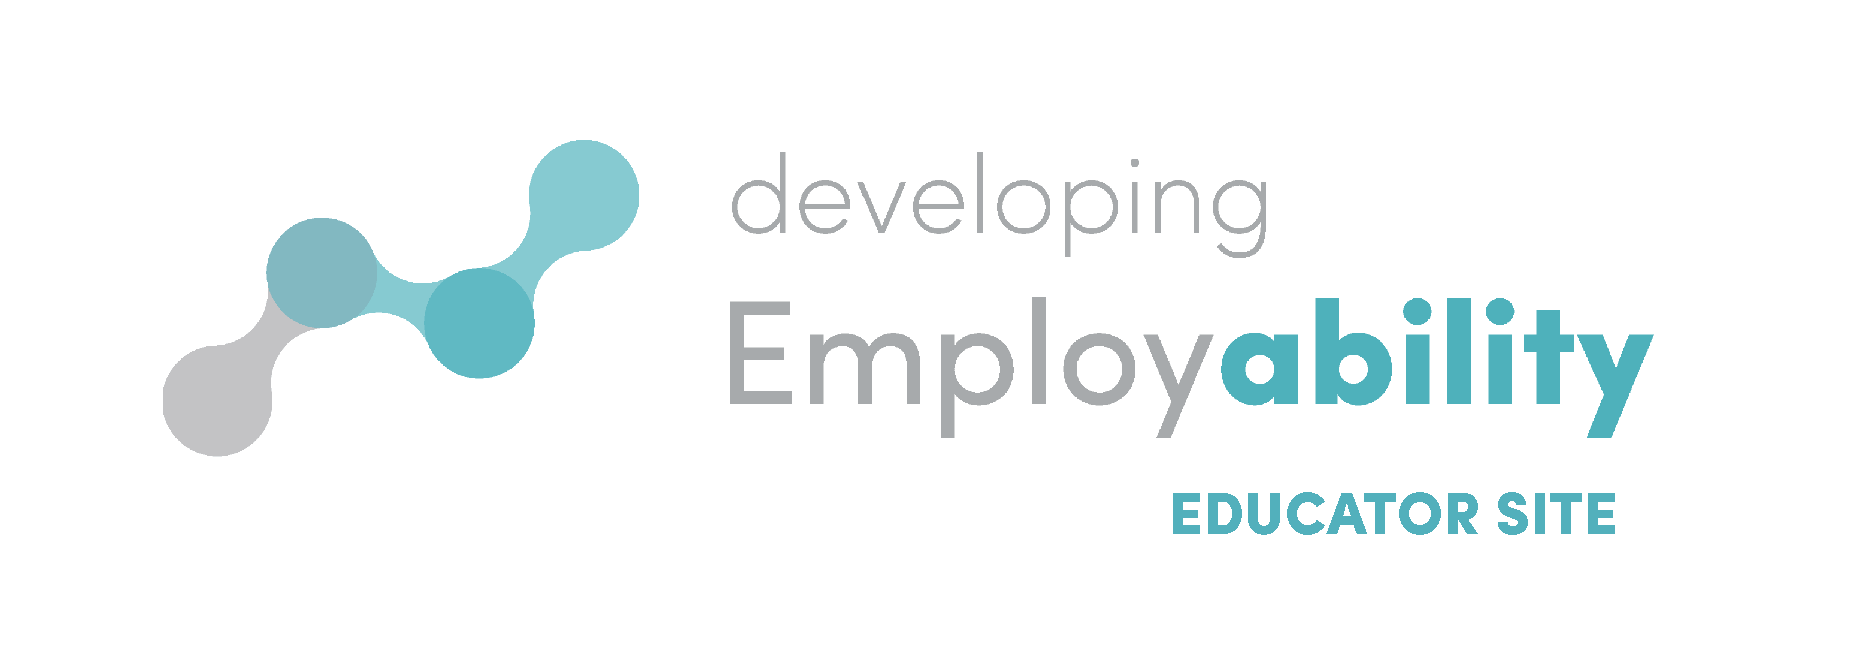 Developing Employability